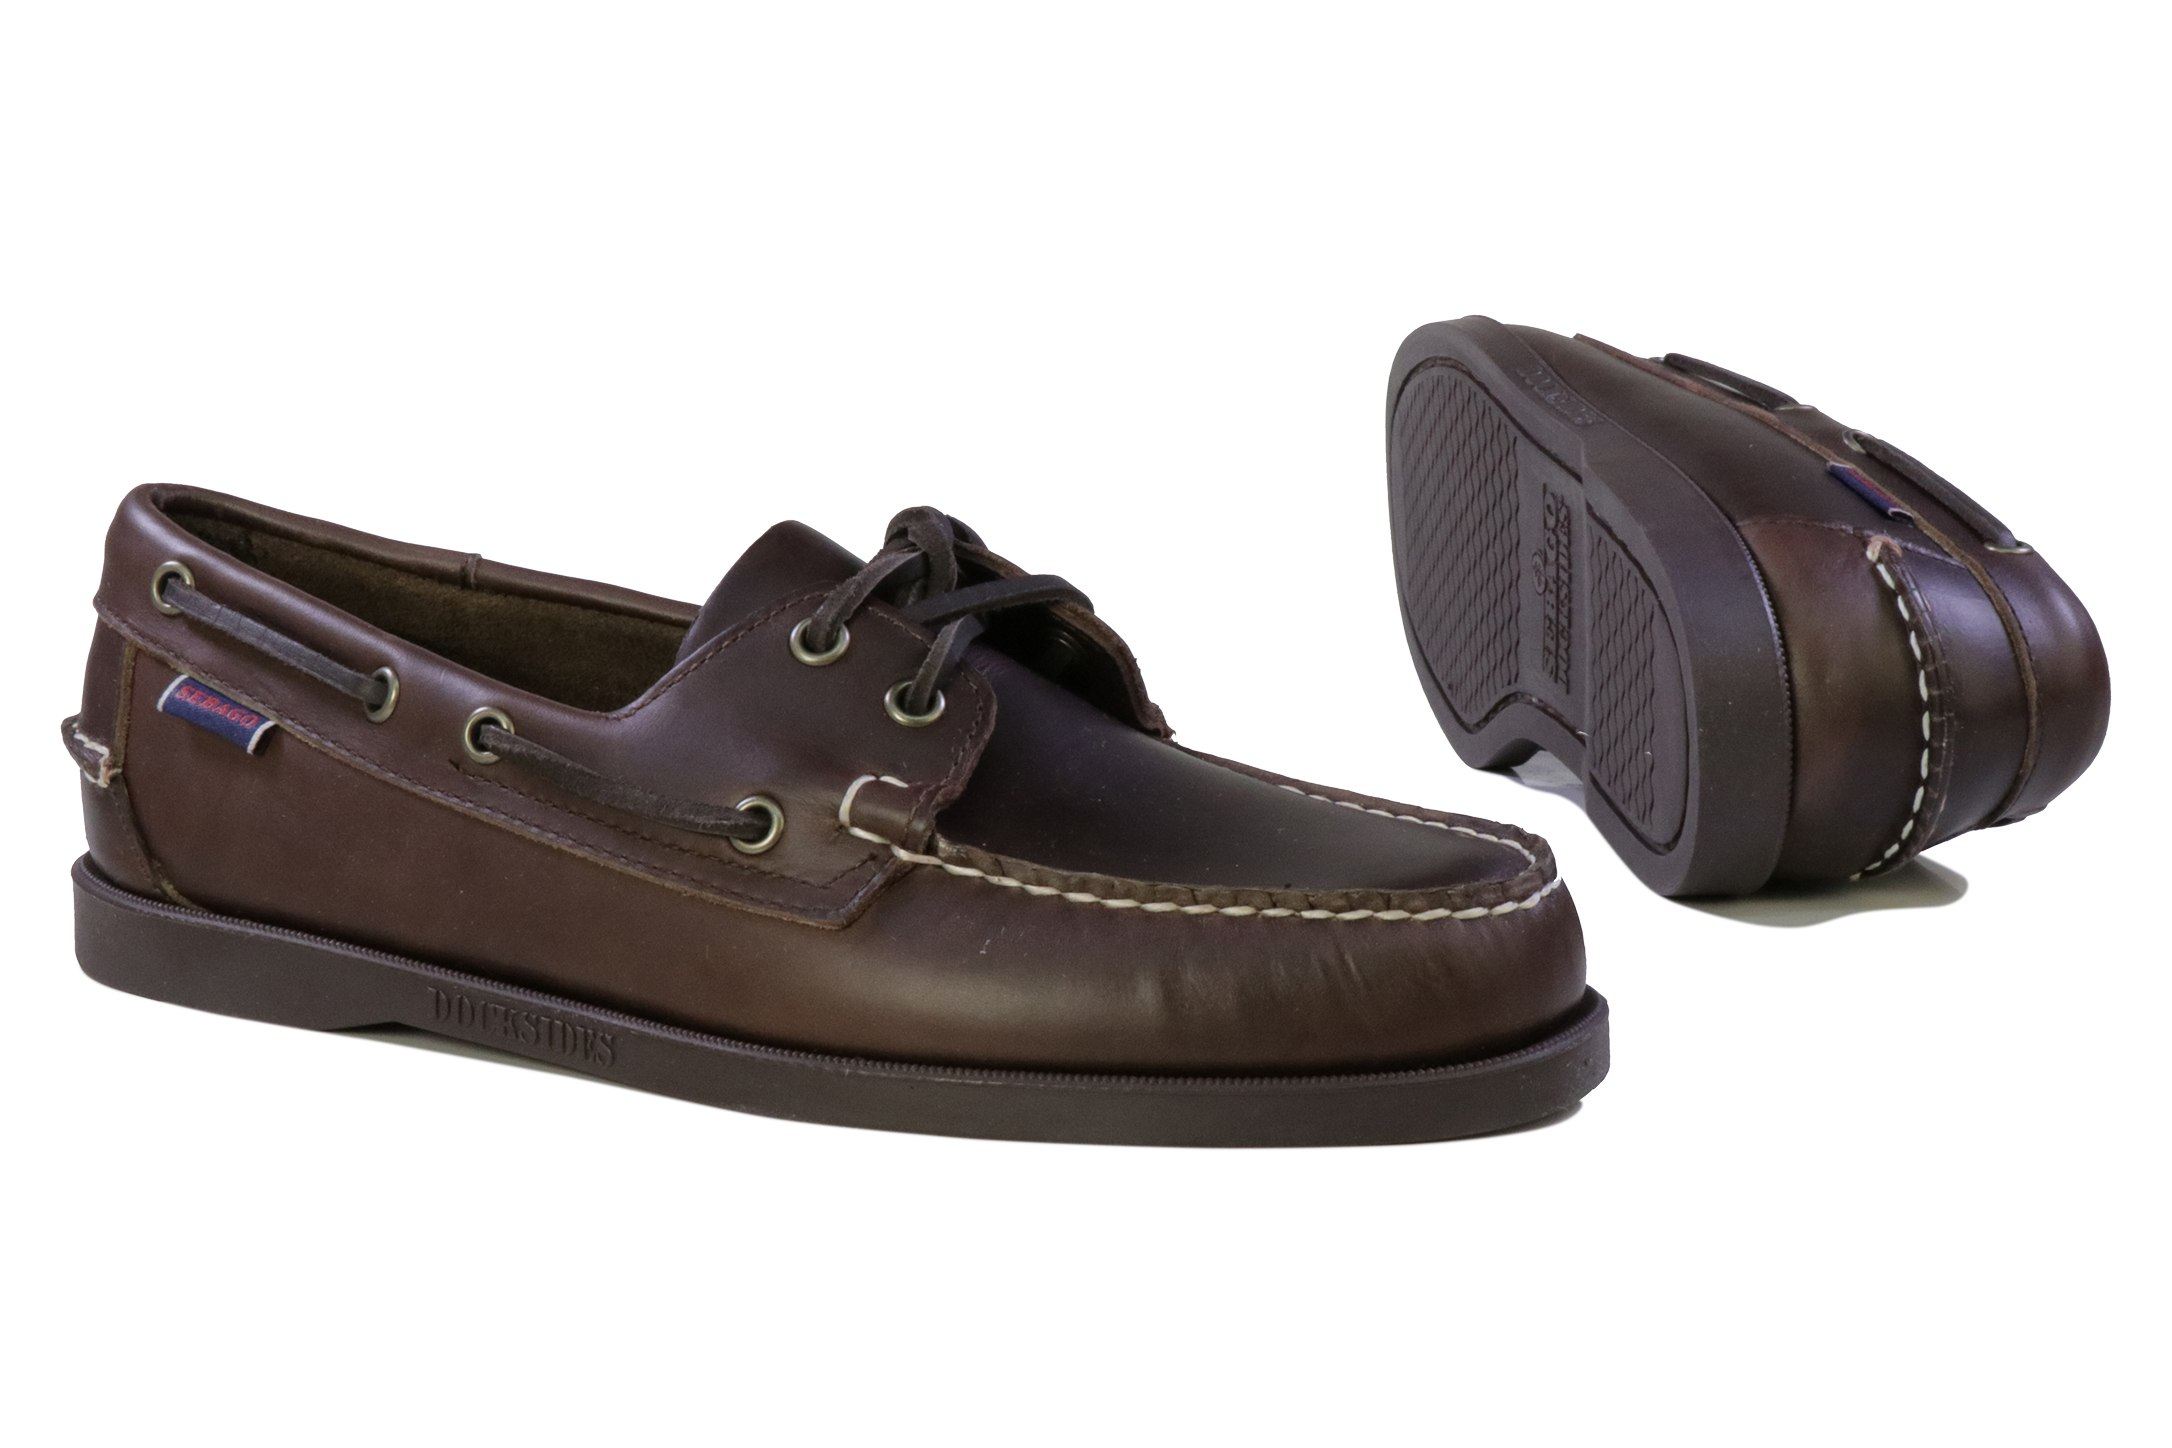 f8c62c85756 Men's Shoe Styles | Shoe Brands | Men's Shoe Centre